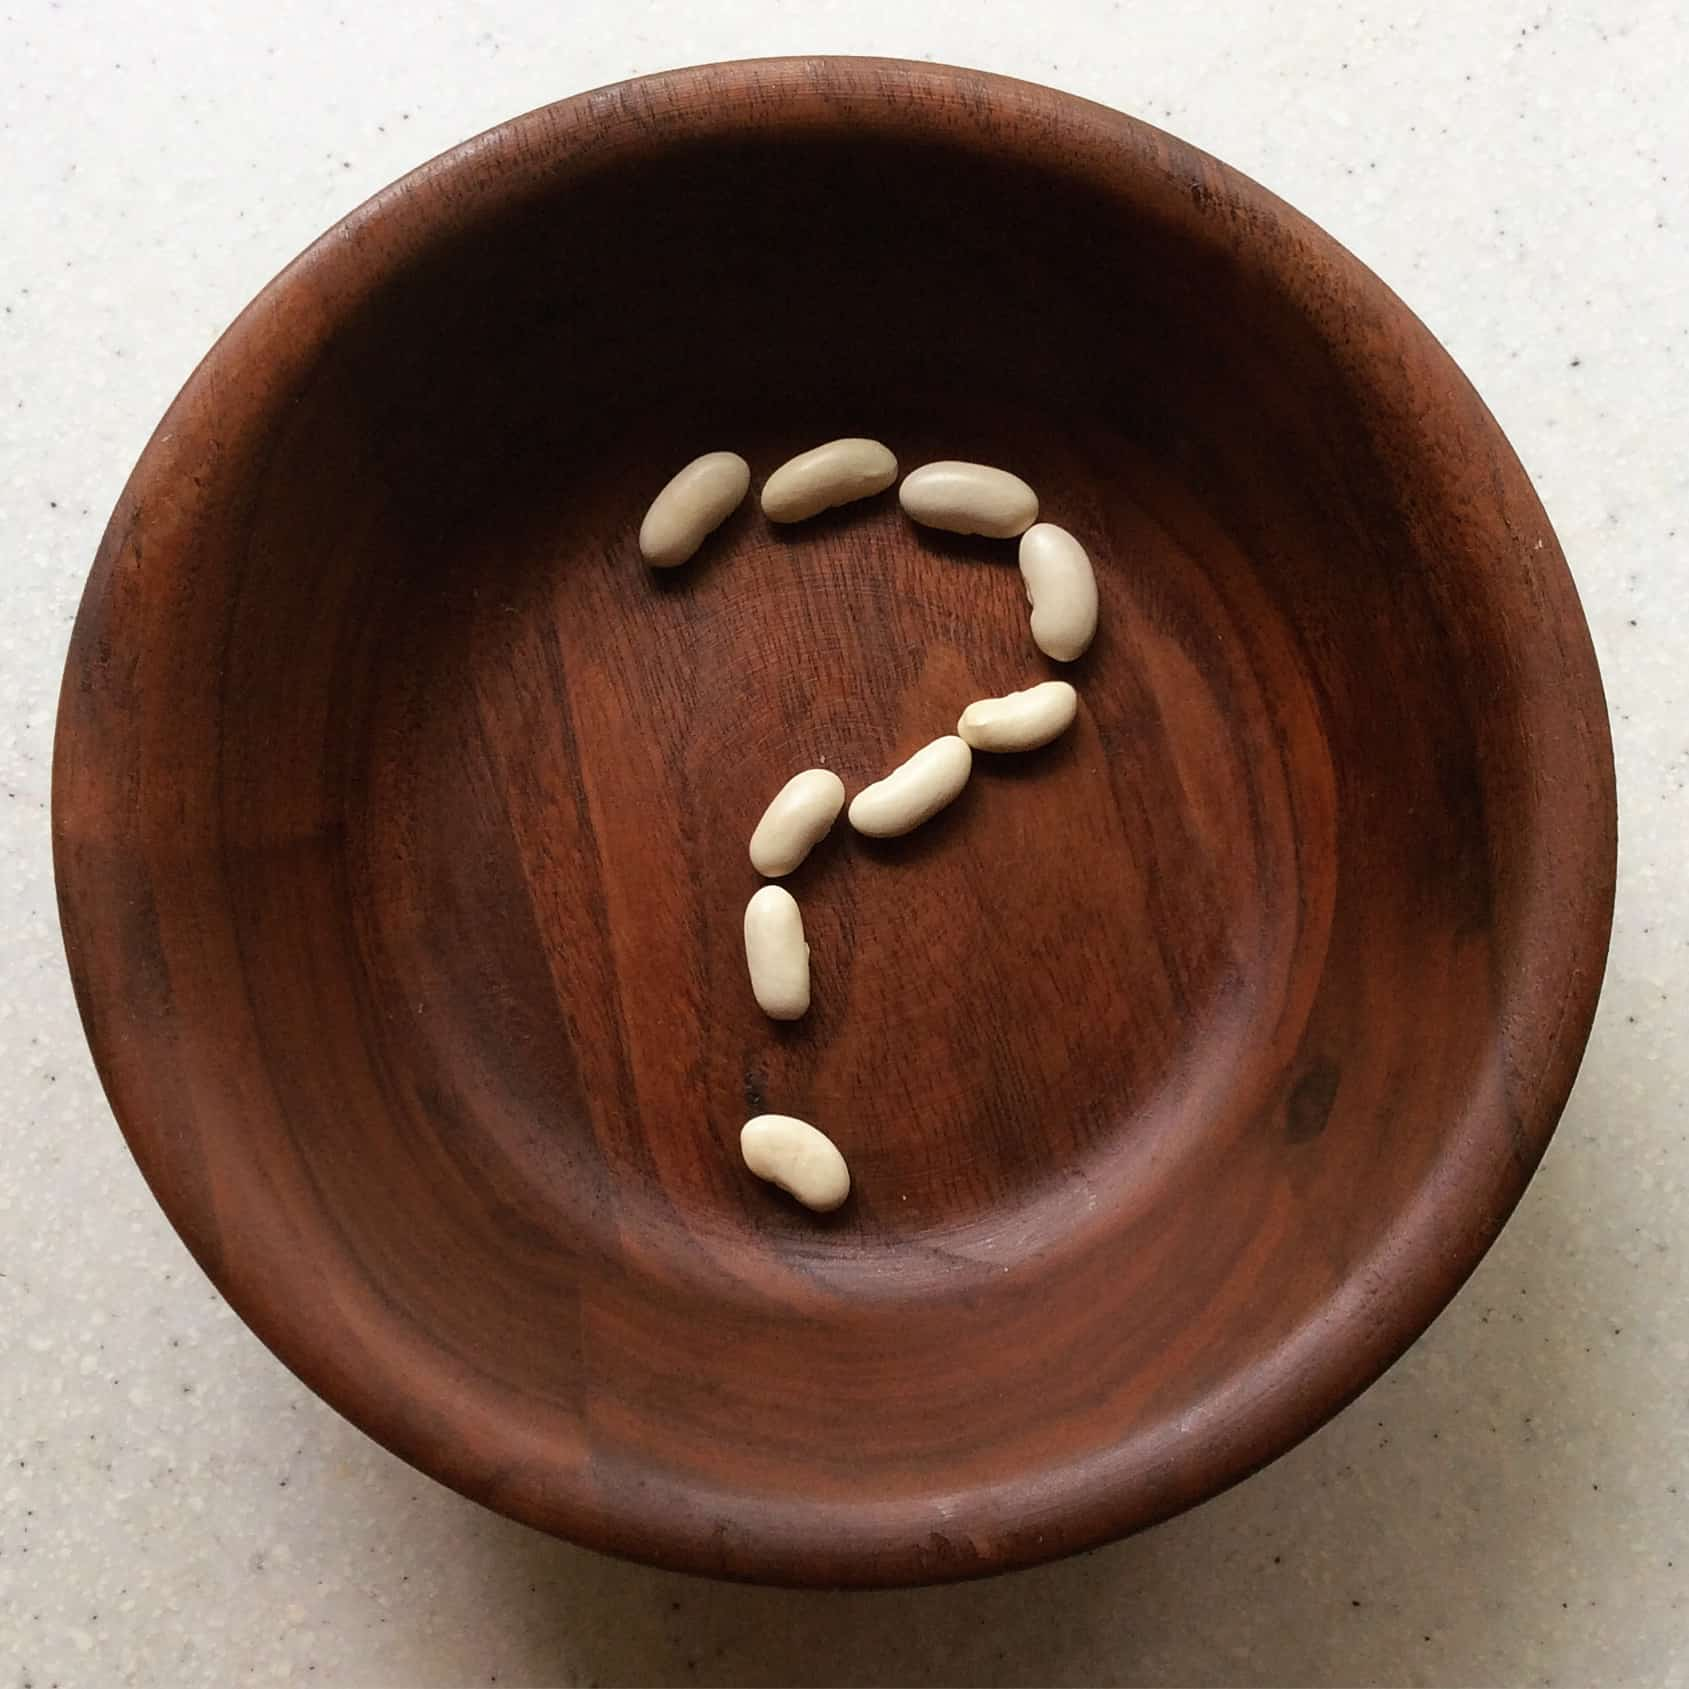 beans forming a question mark in a wooden bowl